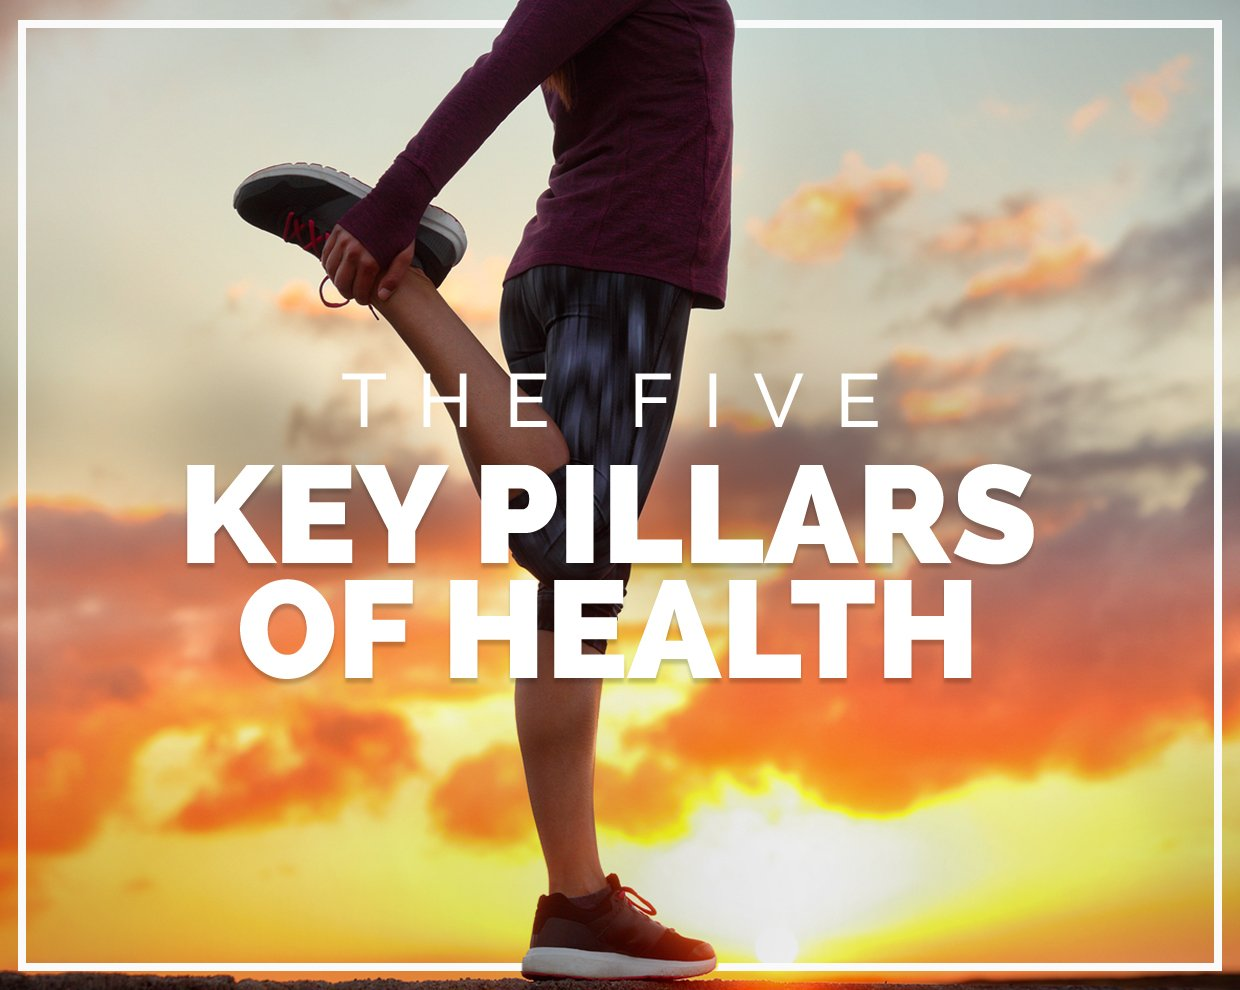 DRESS protocol: The five key pillars of health